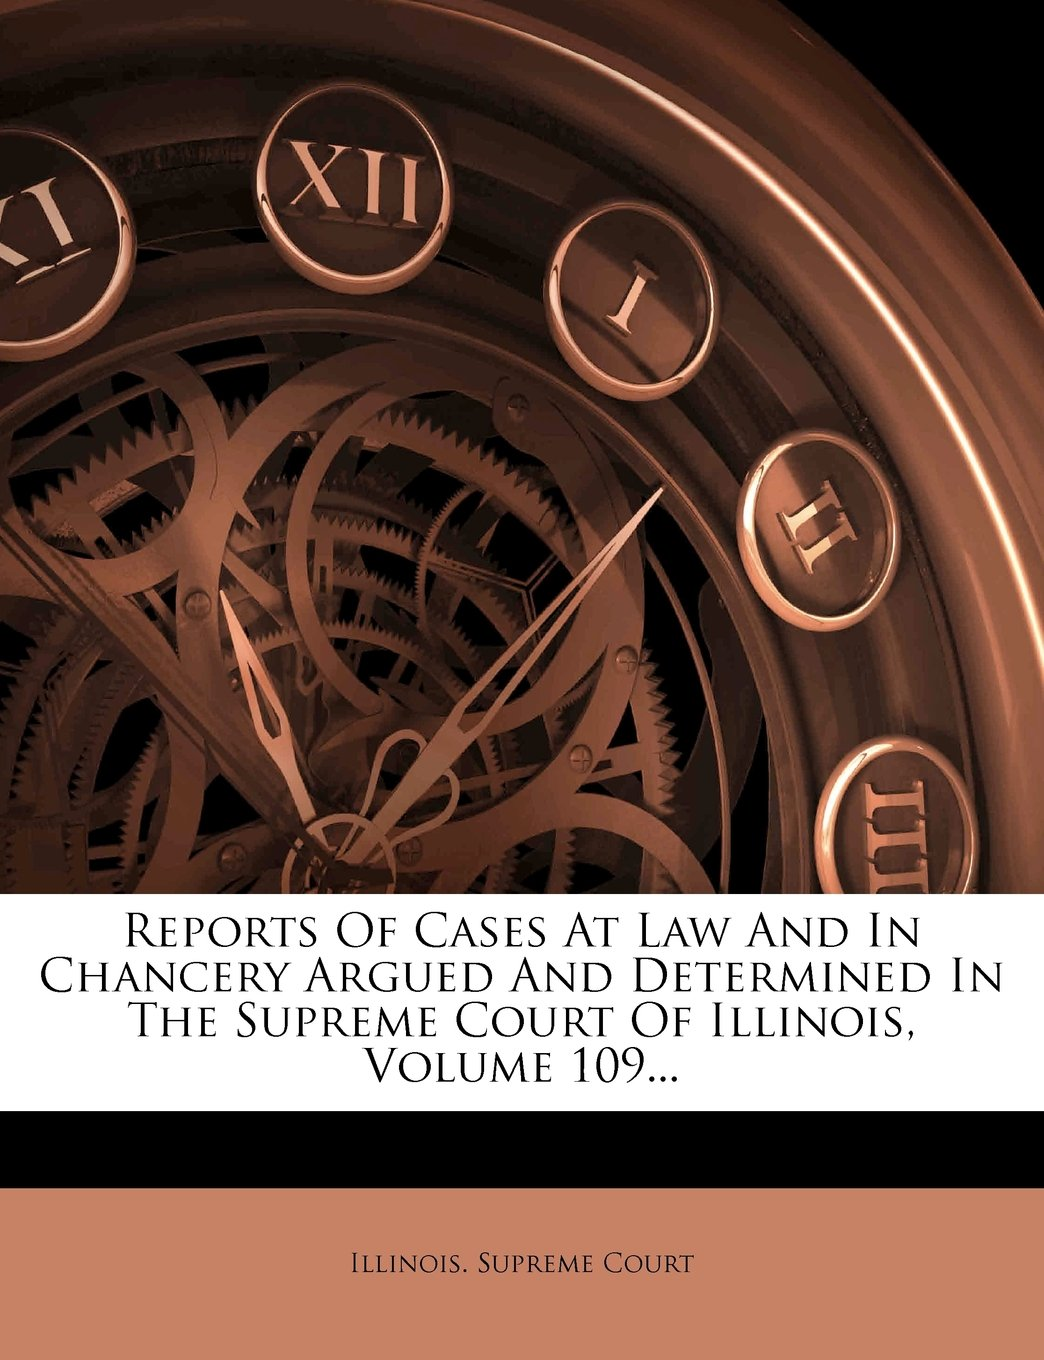 Reports of Cases at Law and in Chancery Argued and Determined in the Supreme Court of Illinois, Volume 109... pdf